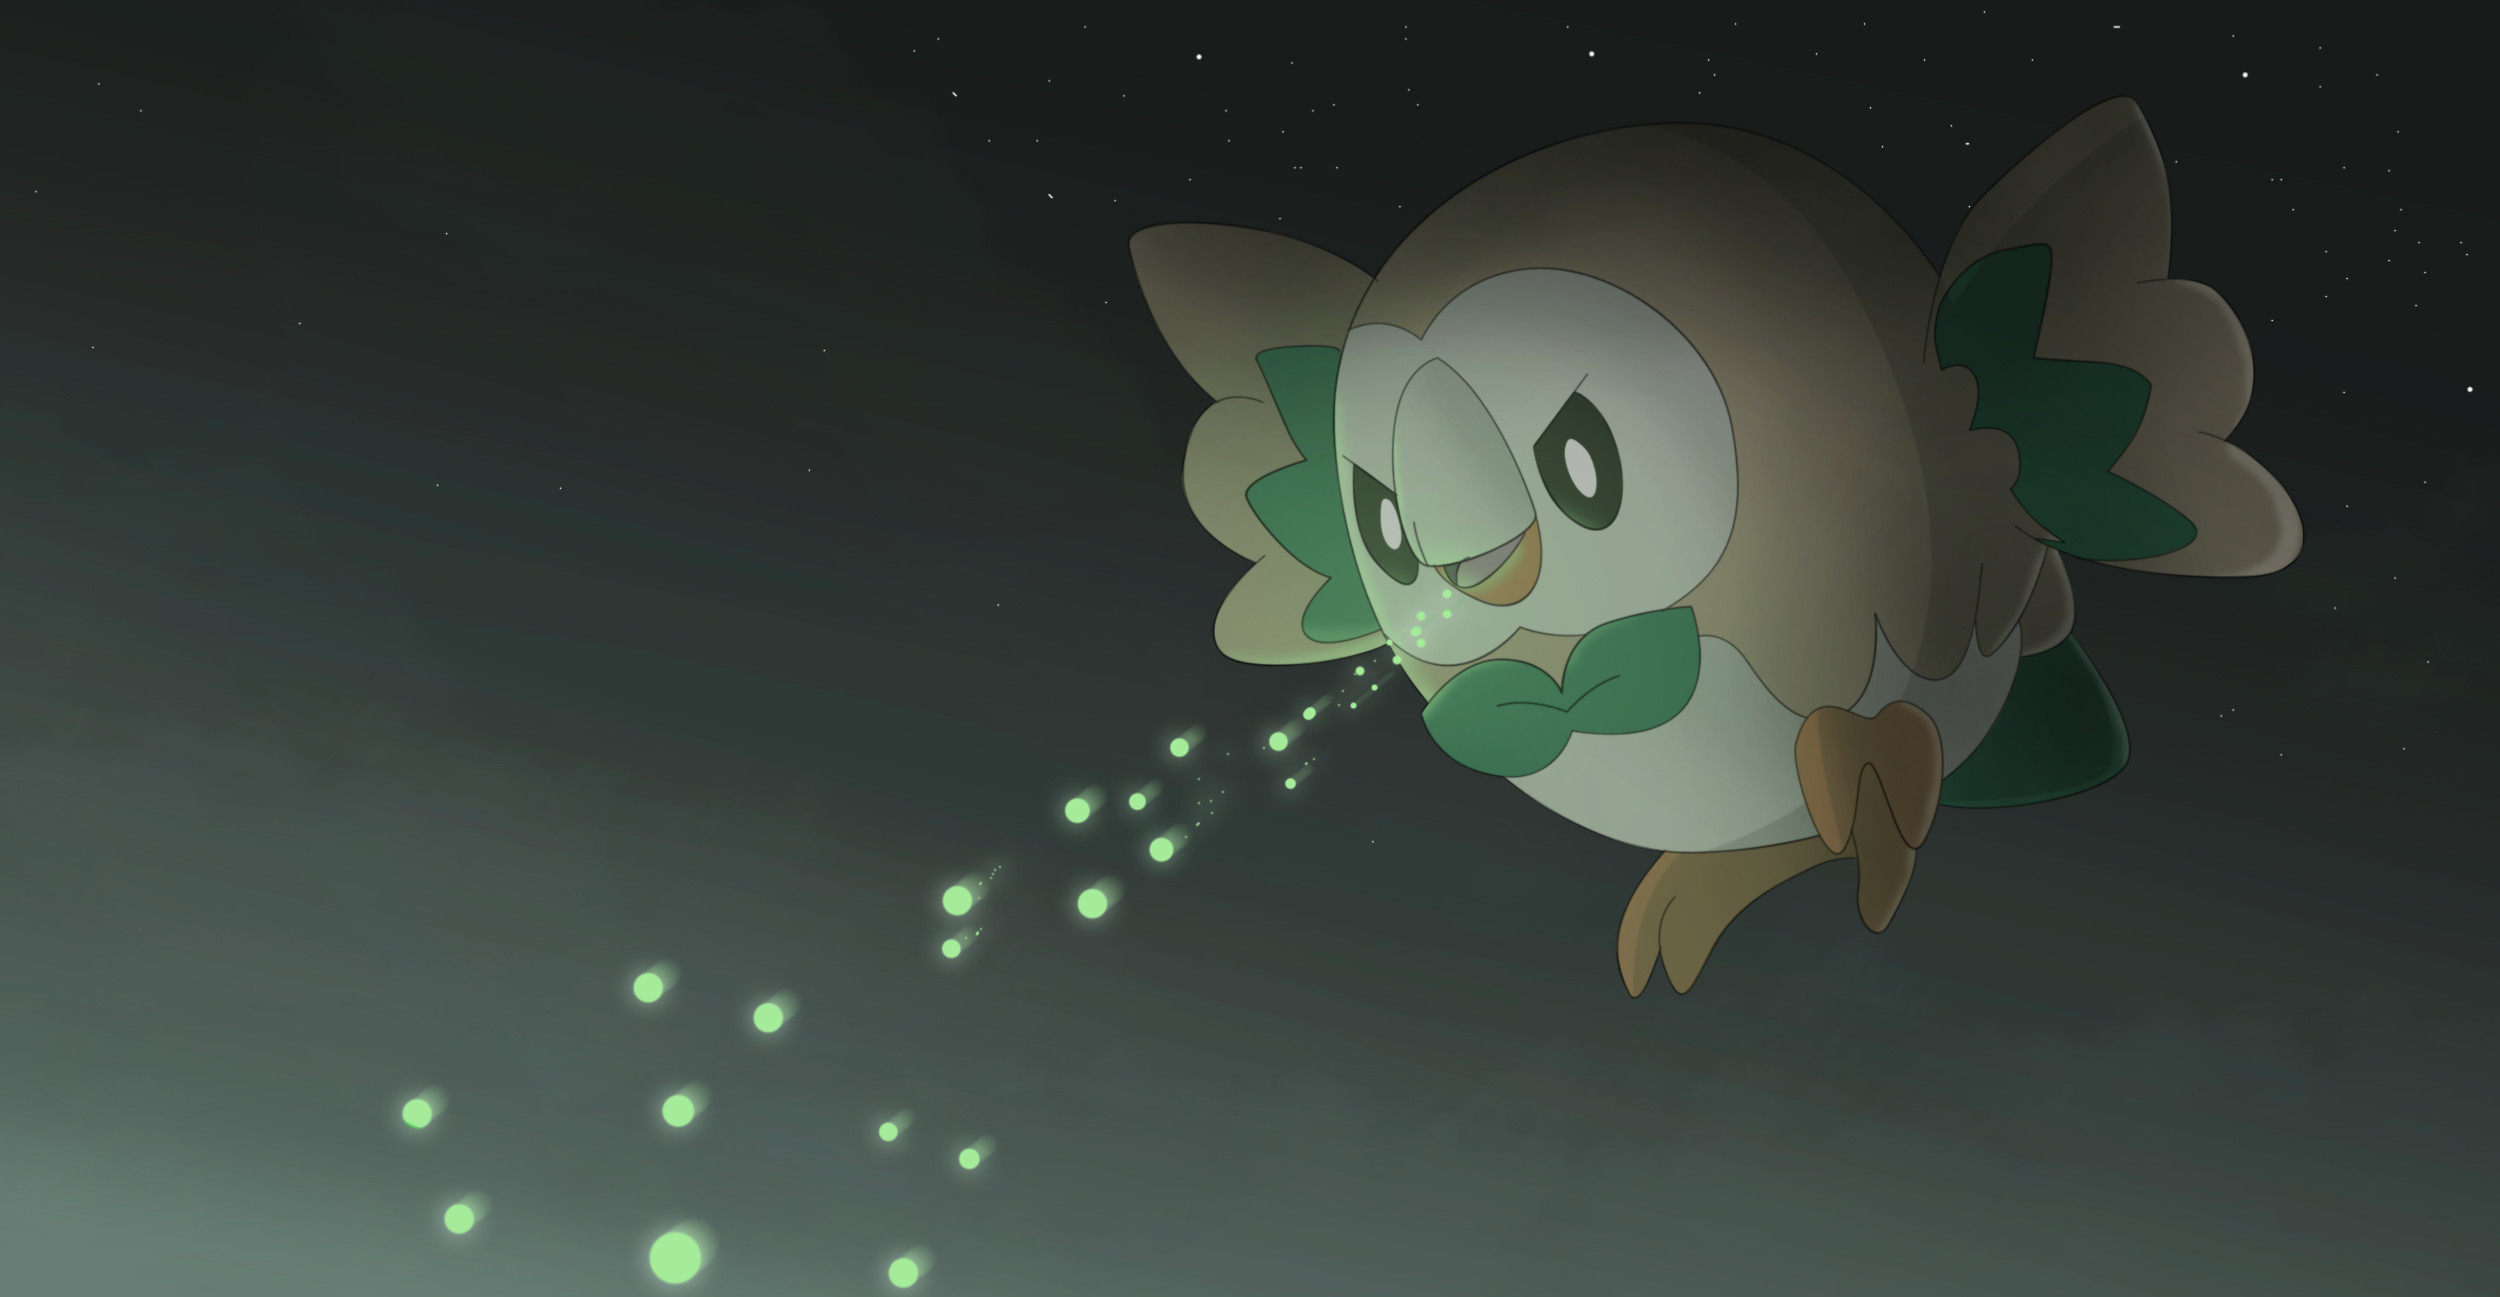 2500x1297 Video Game - Pokémon Sun and Moon Pokémon Rowlet (Pokémon) Wallpaper